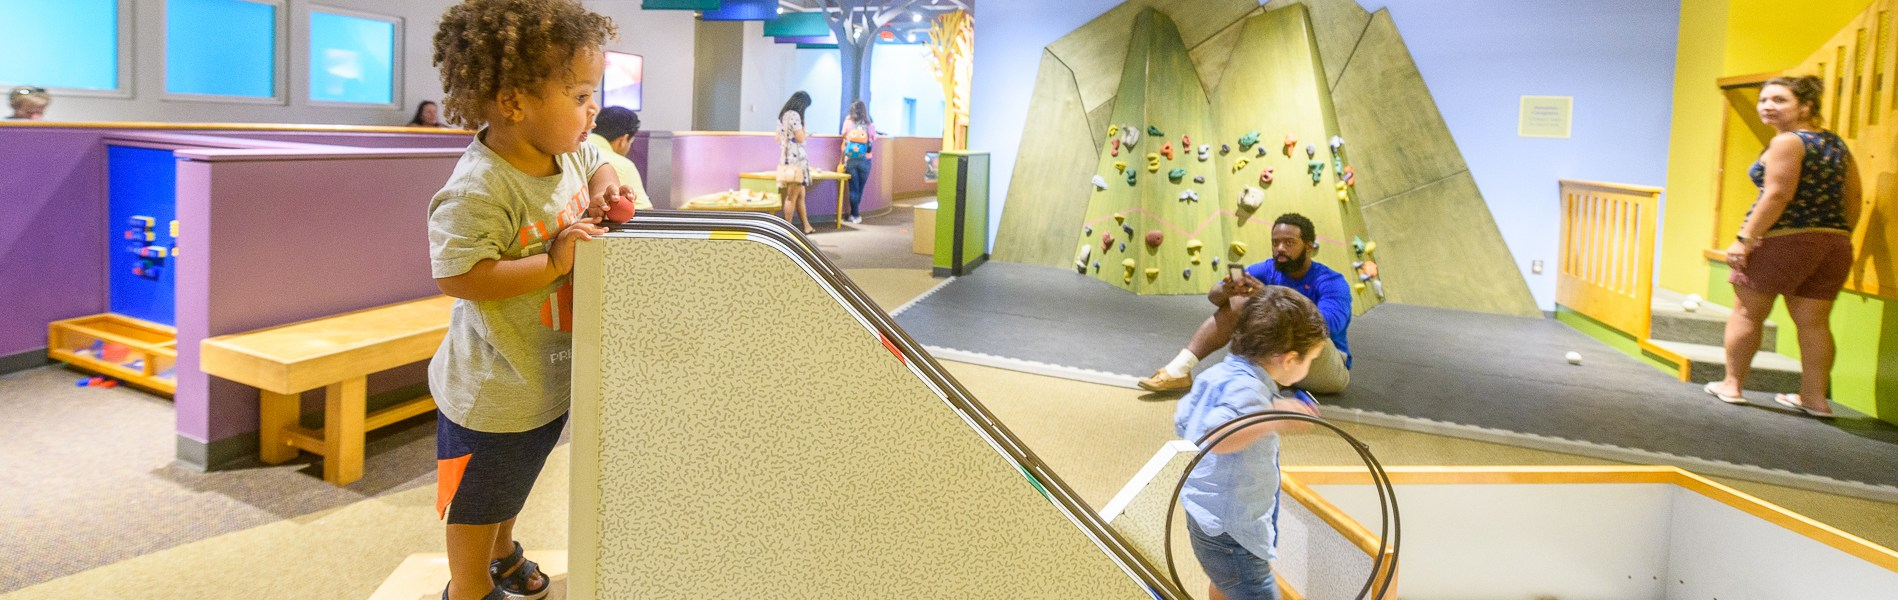 A child plays with a ball ramp in a brightly lit room as an adult watches.